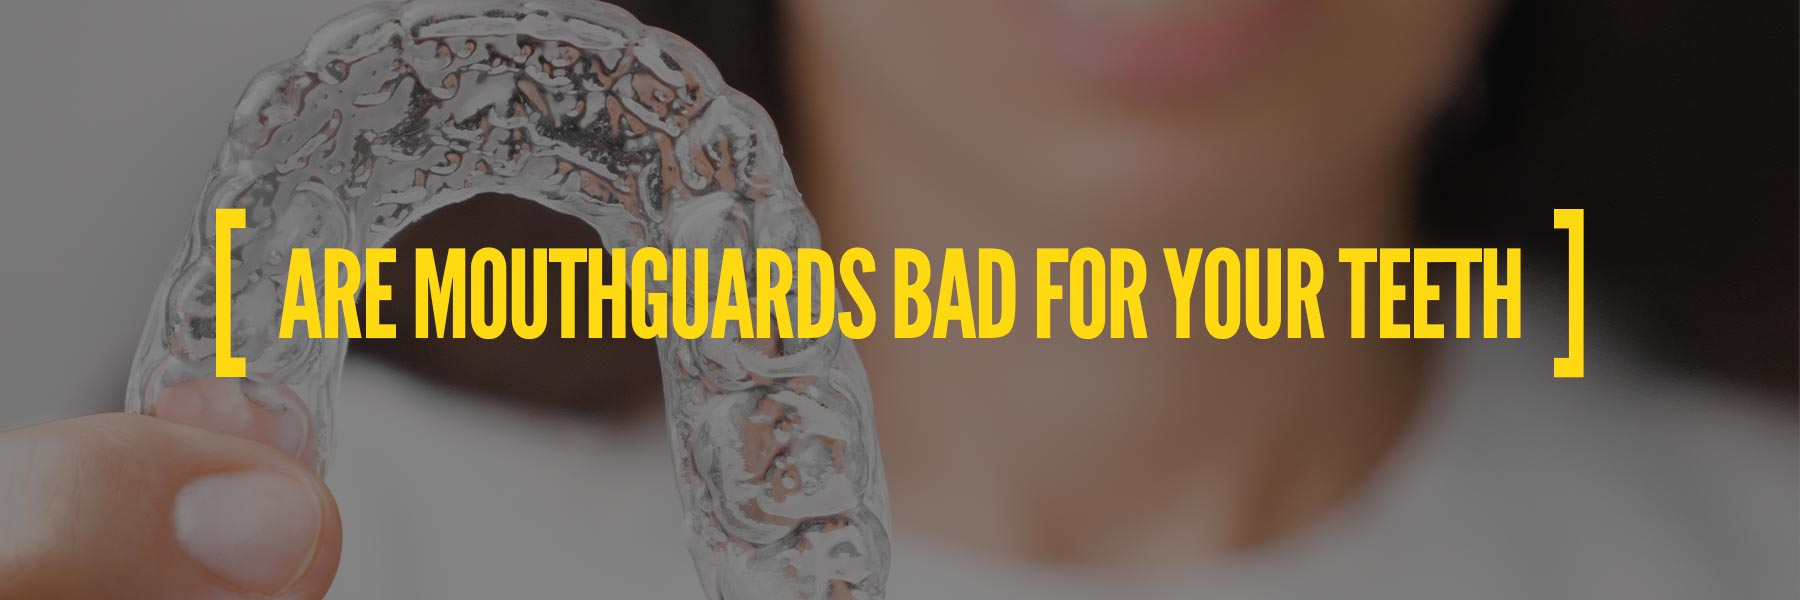 Is wearing a mouthguard bad for your teeth?